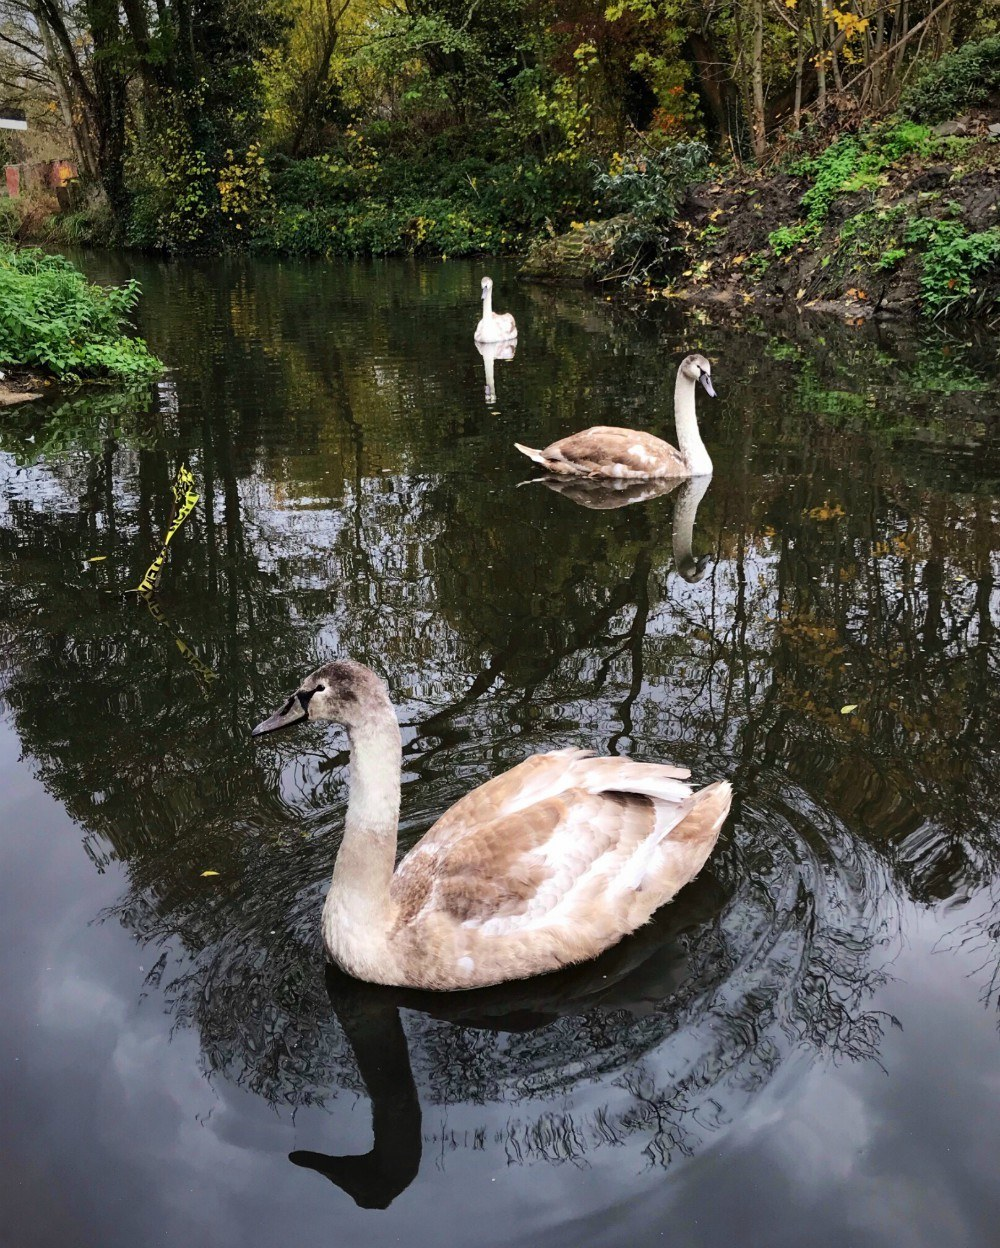 Things to do near Stroud - Swans on Stroud Canal with Michael Paul Holidays Photo Heatheronhertravels.com